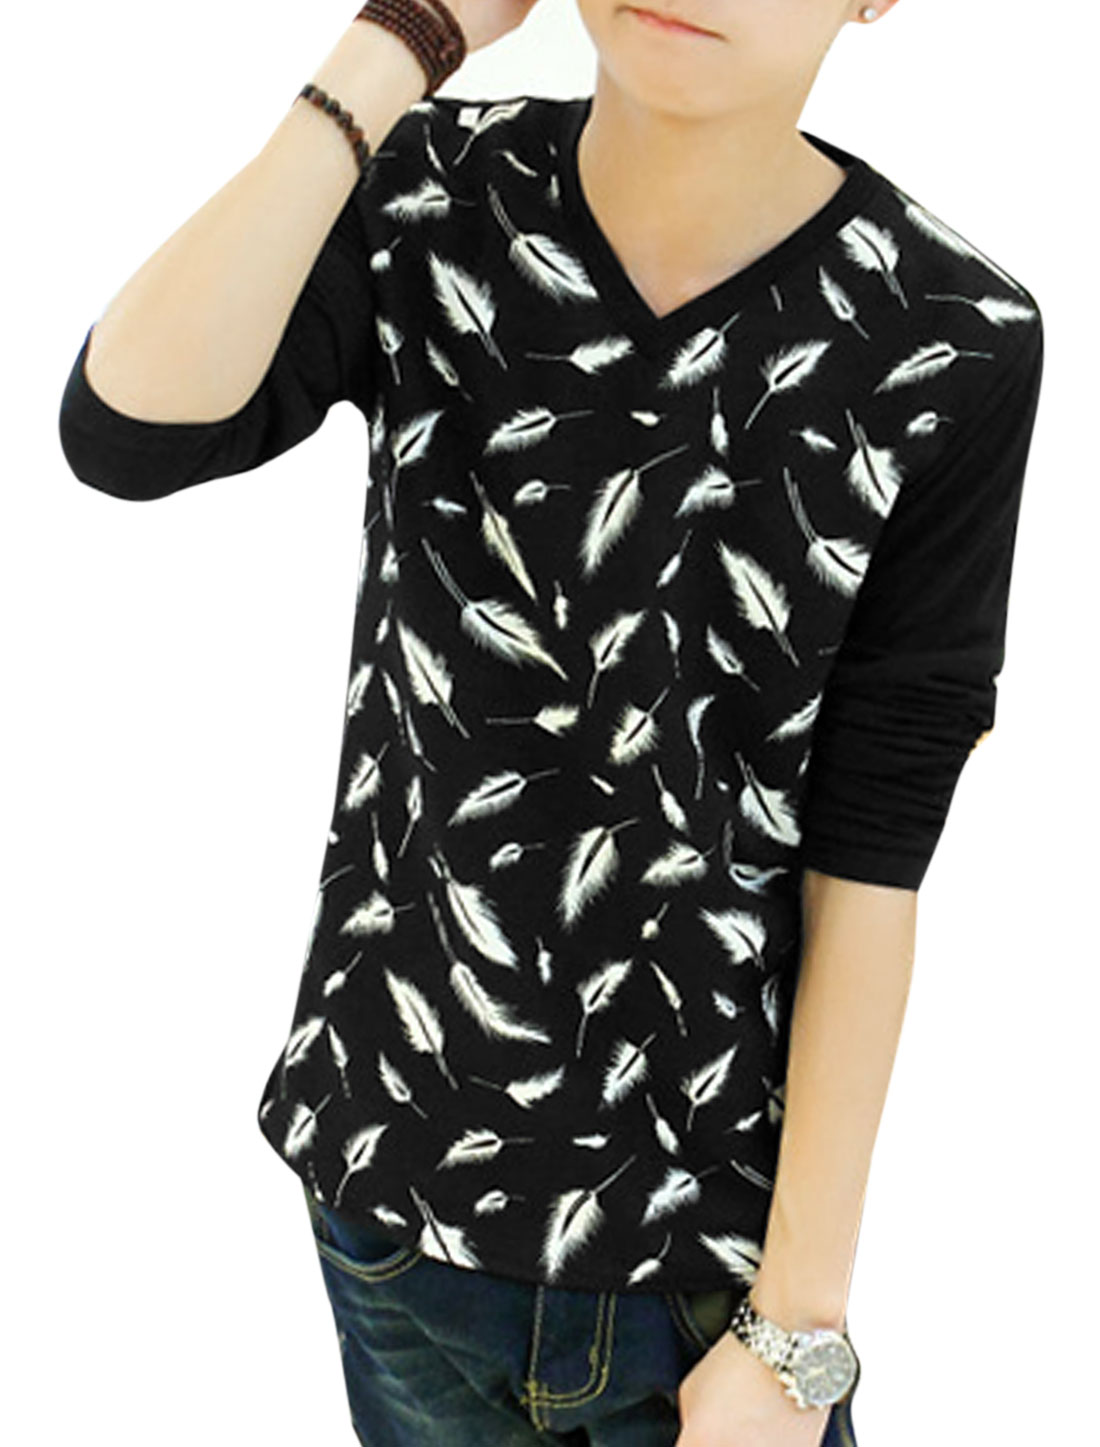 Men Feather Print Contrast Splicing Design Casual T-Shirt Black S